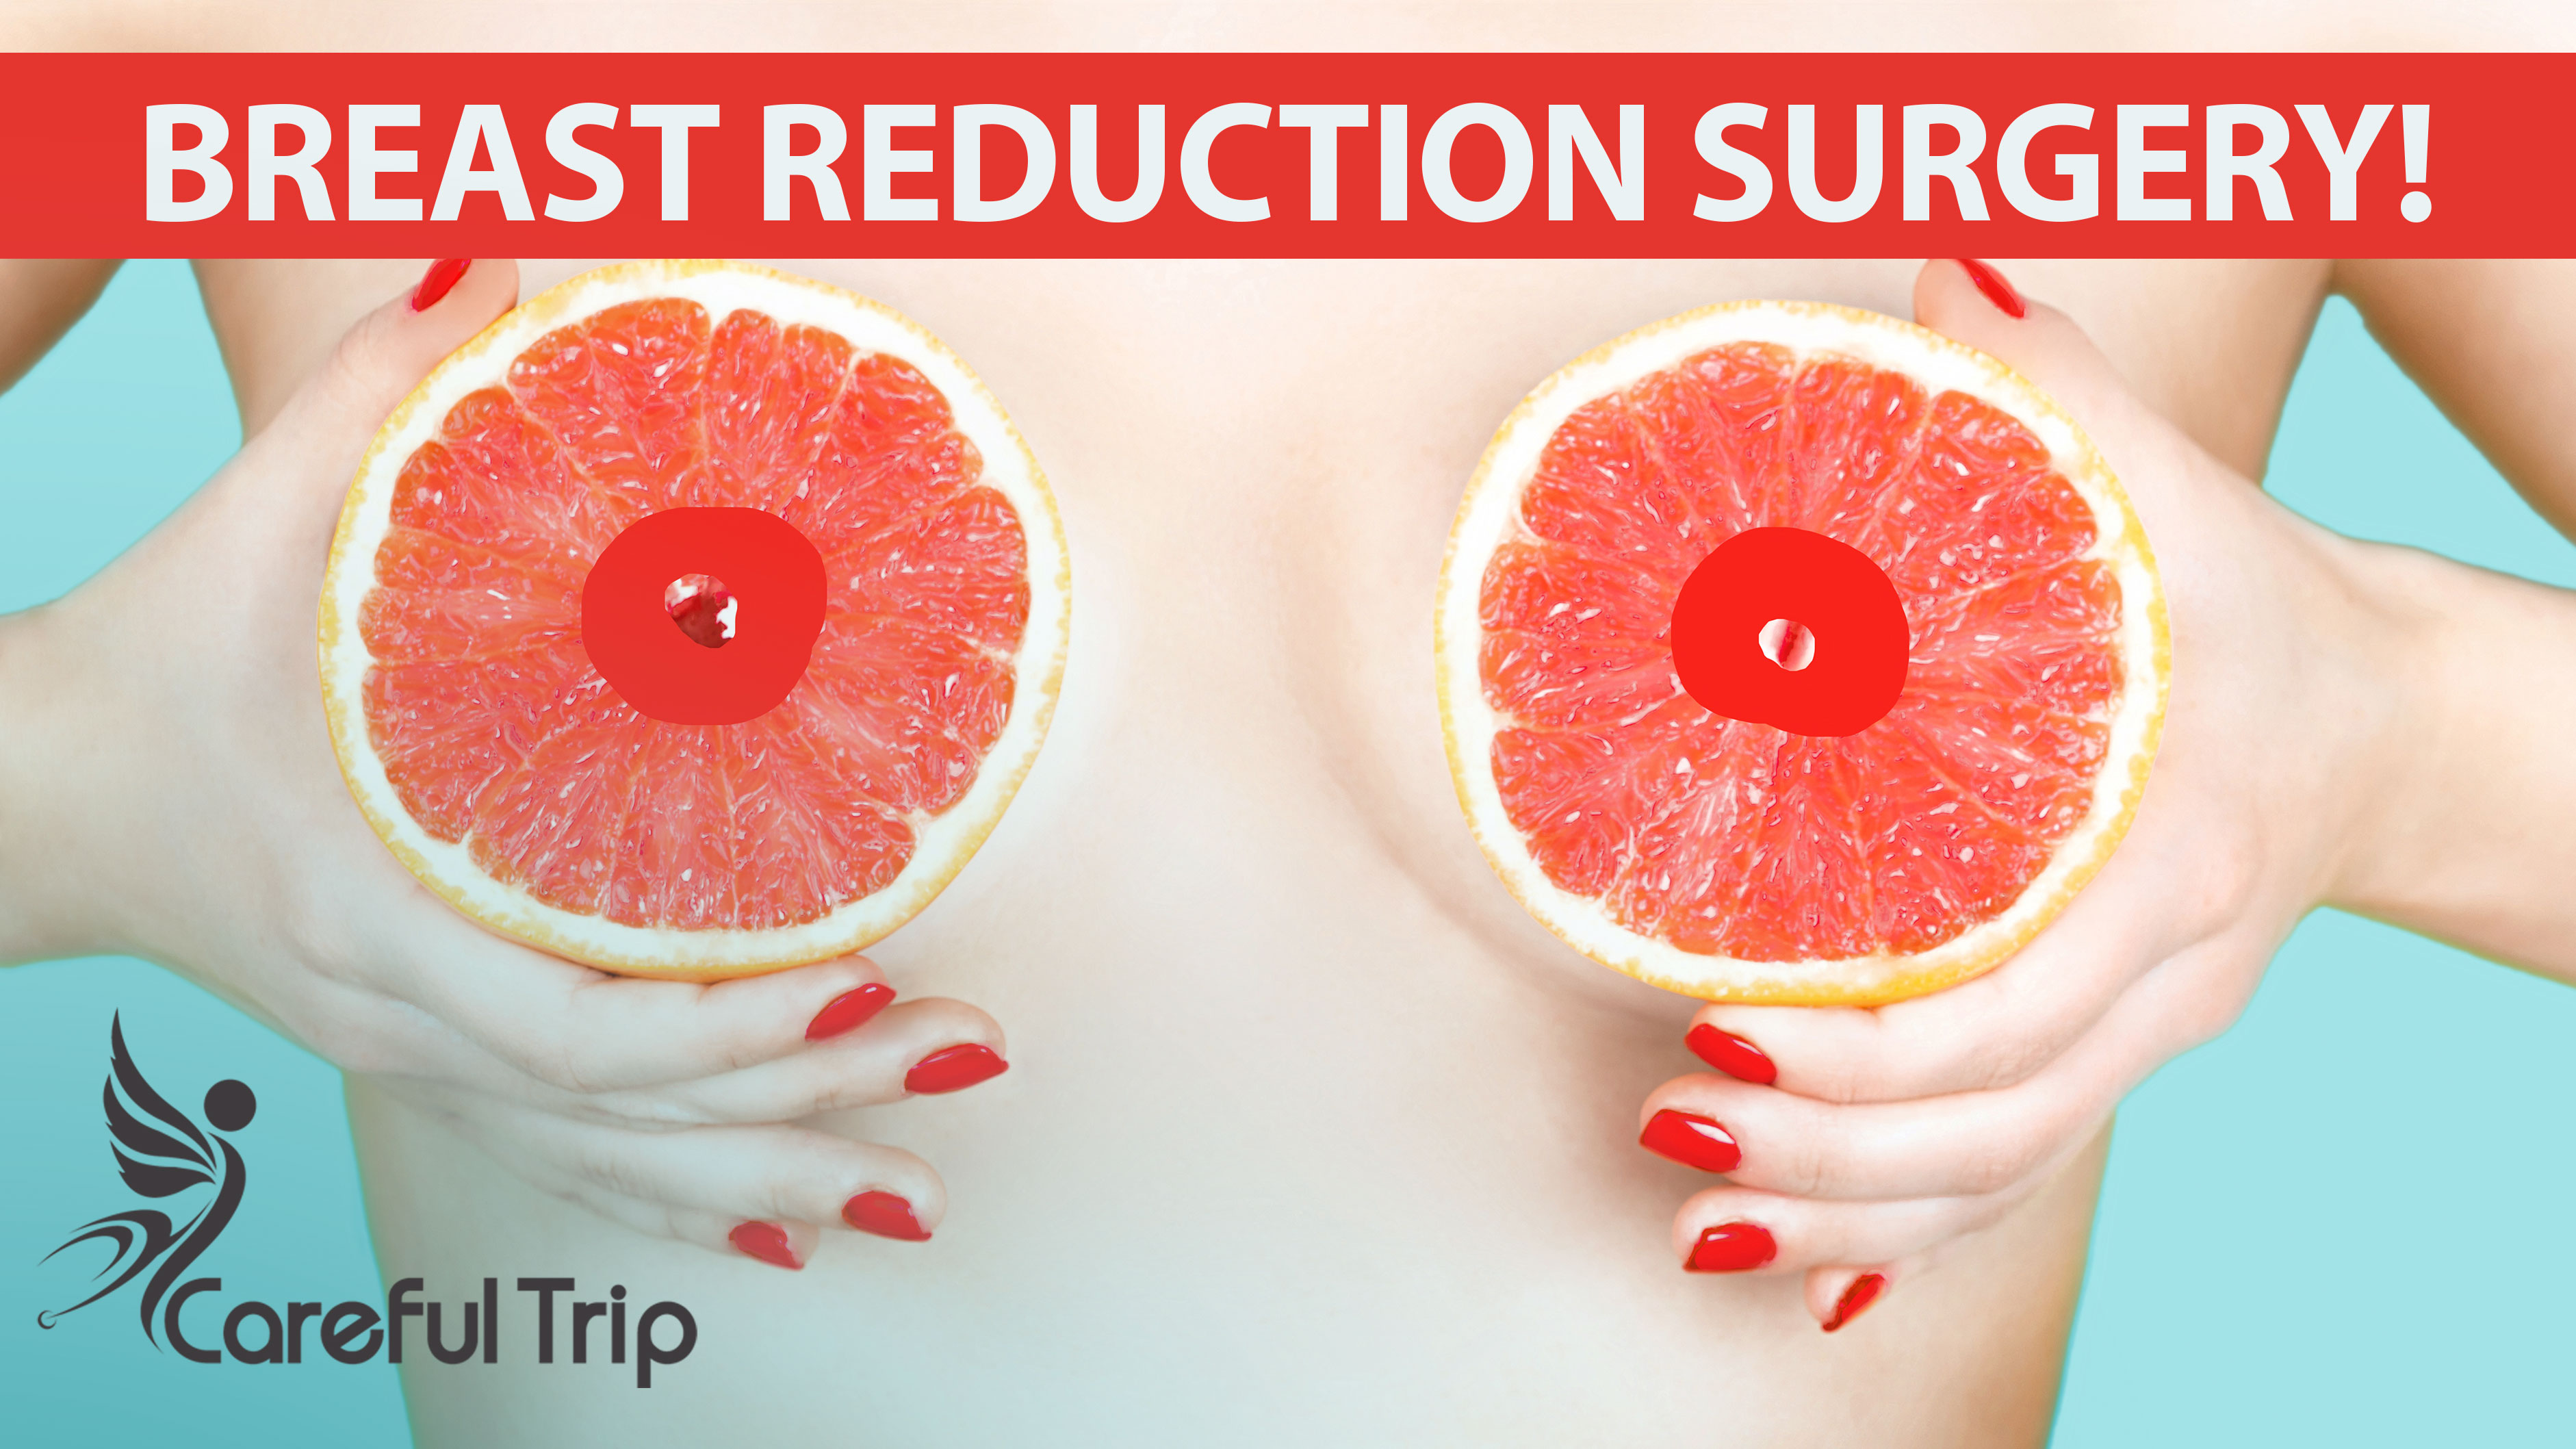 Postoperative care of breast reduction surgery!